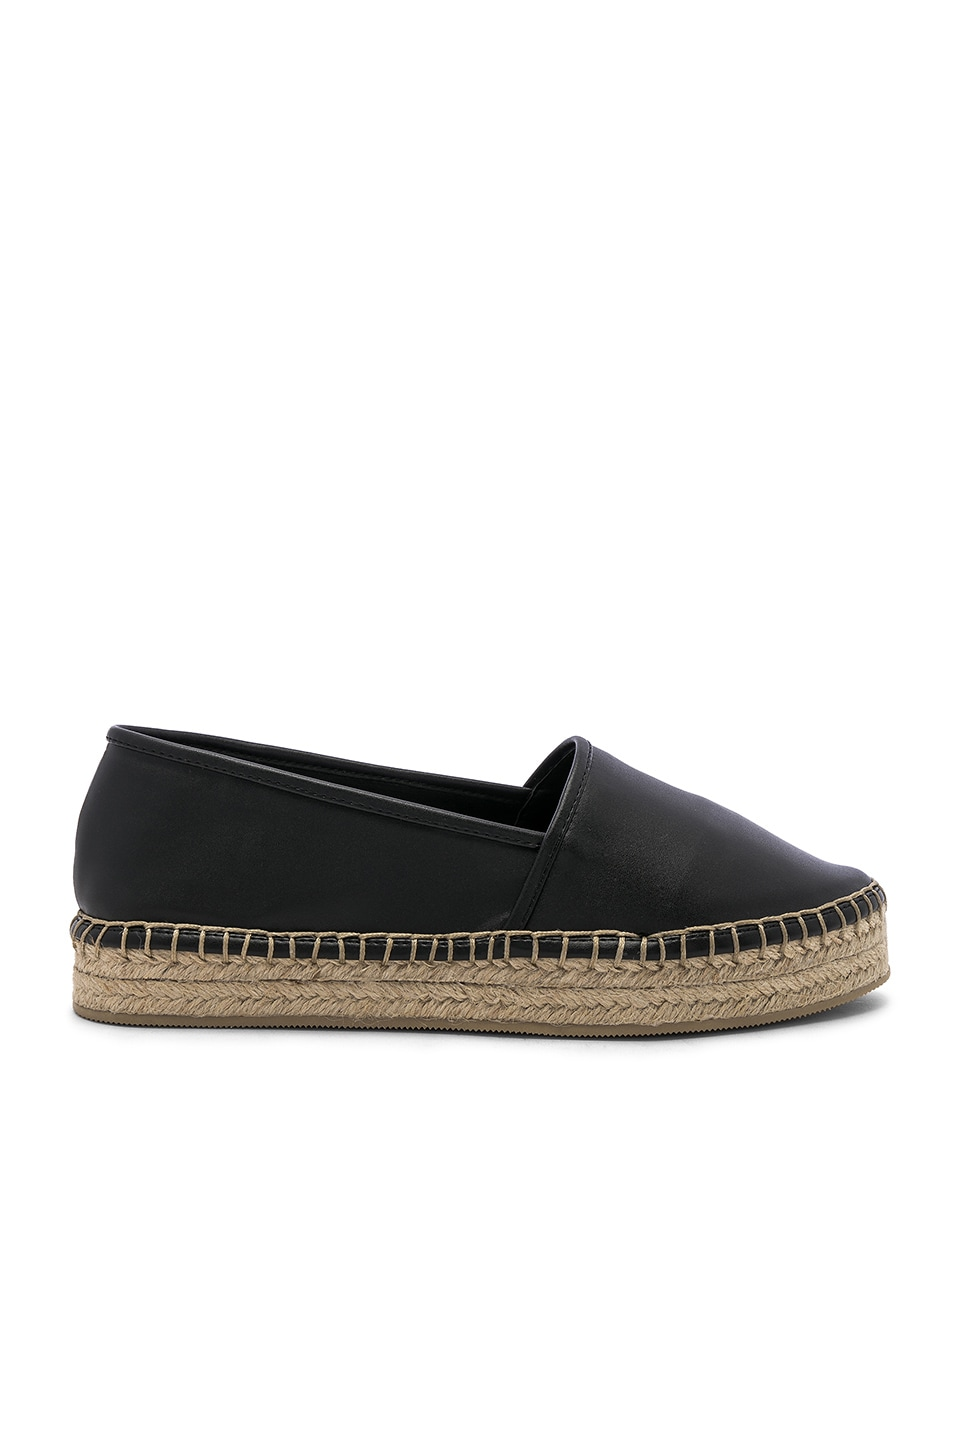 RAYE Yuma Espadrille in Black